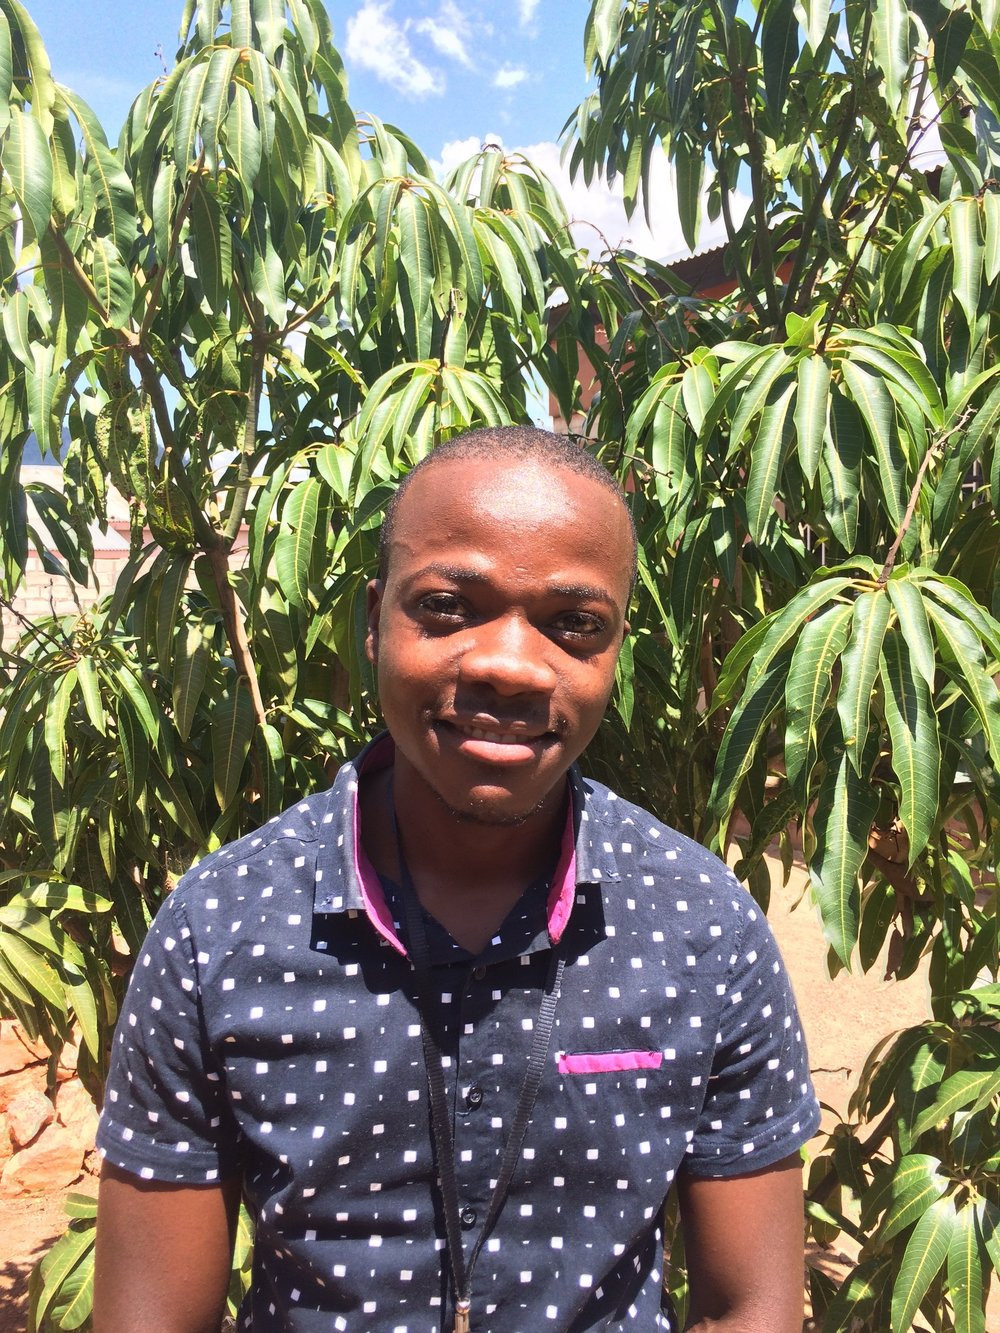 Emmanuel Lungu, Teacher Supervisor Petauke South   Emmanuel Lungu is a Teacher Supervisor for Petauke South. He holds a Diploma in Arts from Evelyn Hone College of Applied Arts and Commerce. He joined Impact Network in 2017.